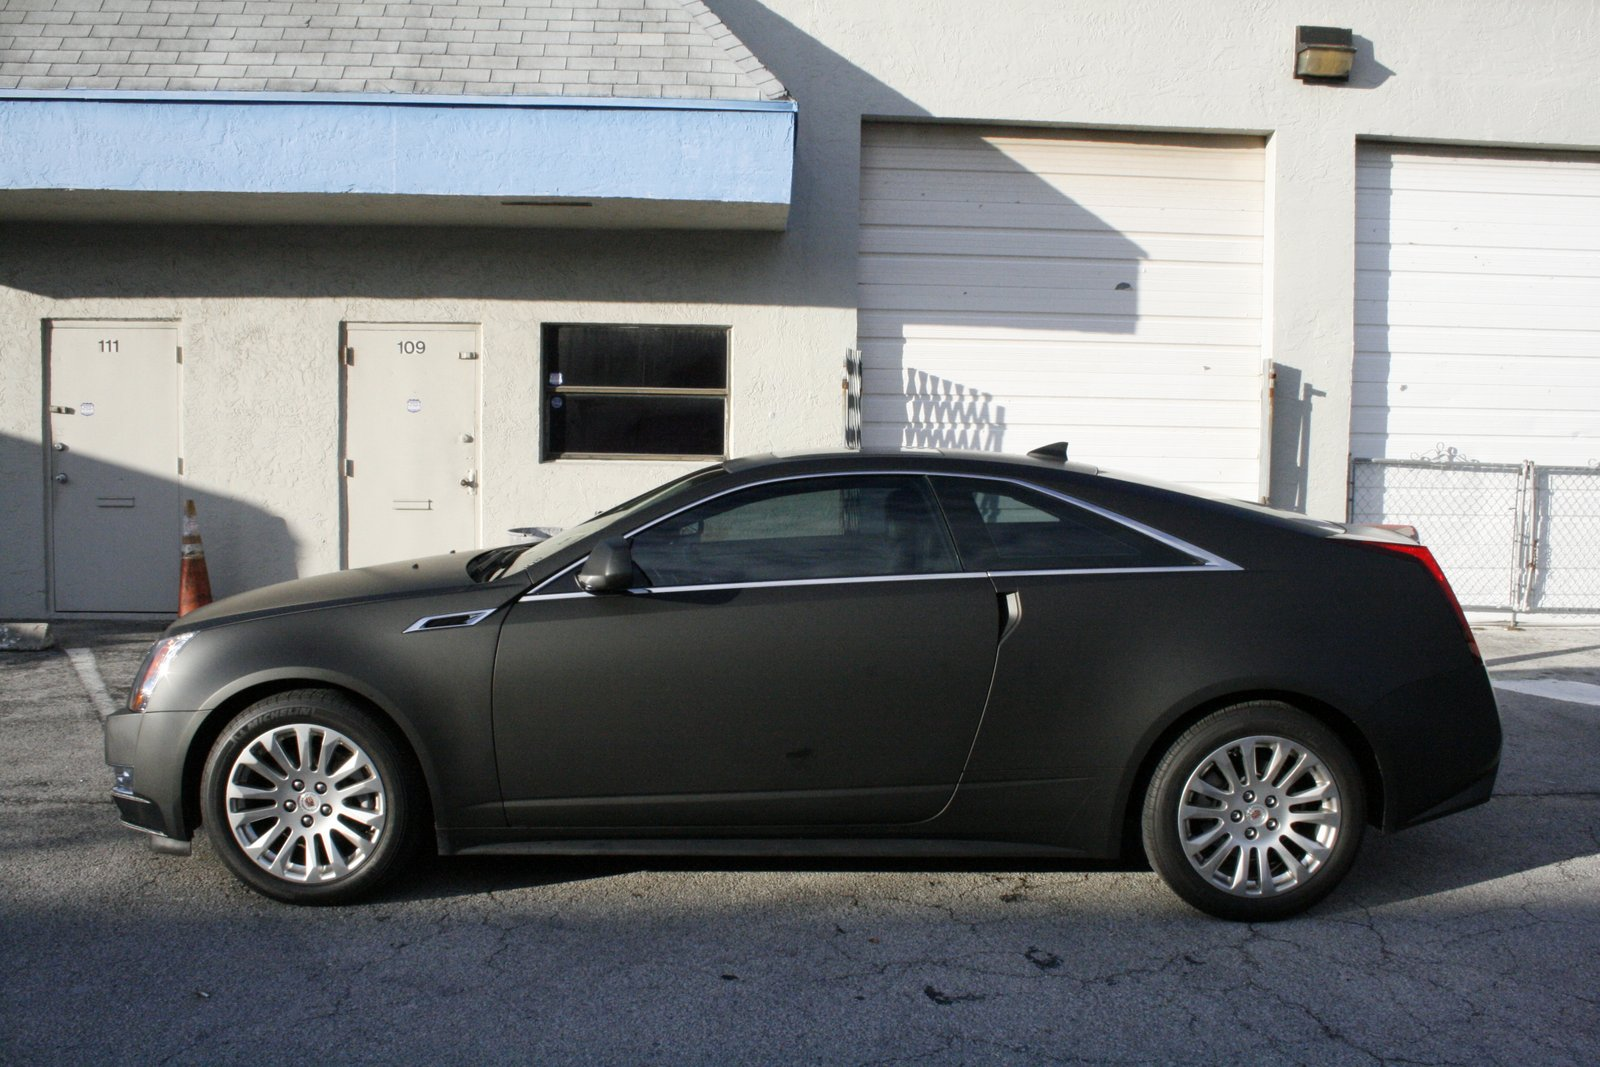 2013 Cadillac Ats For Sale >> Gold 2013 ATS sale - yes, no? - Page 3